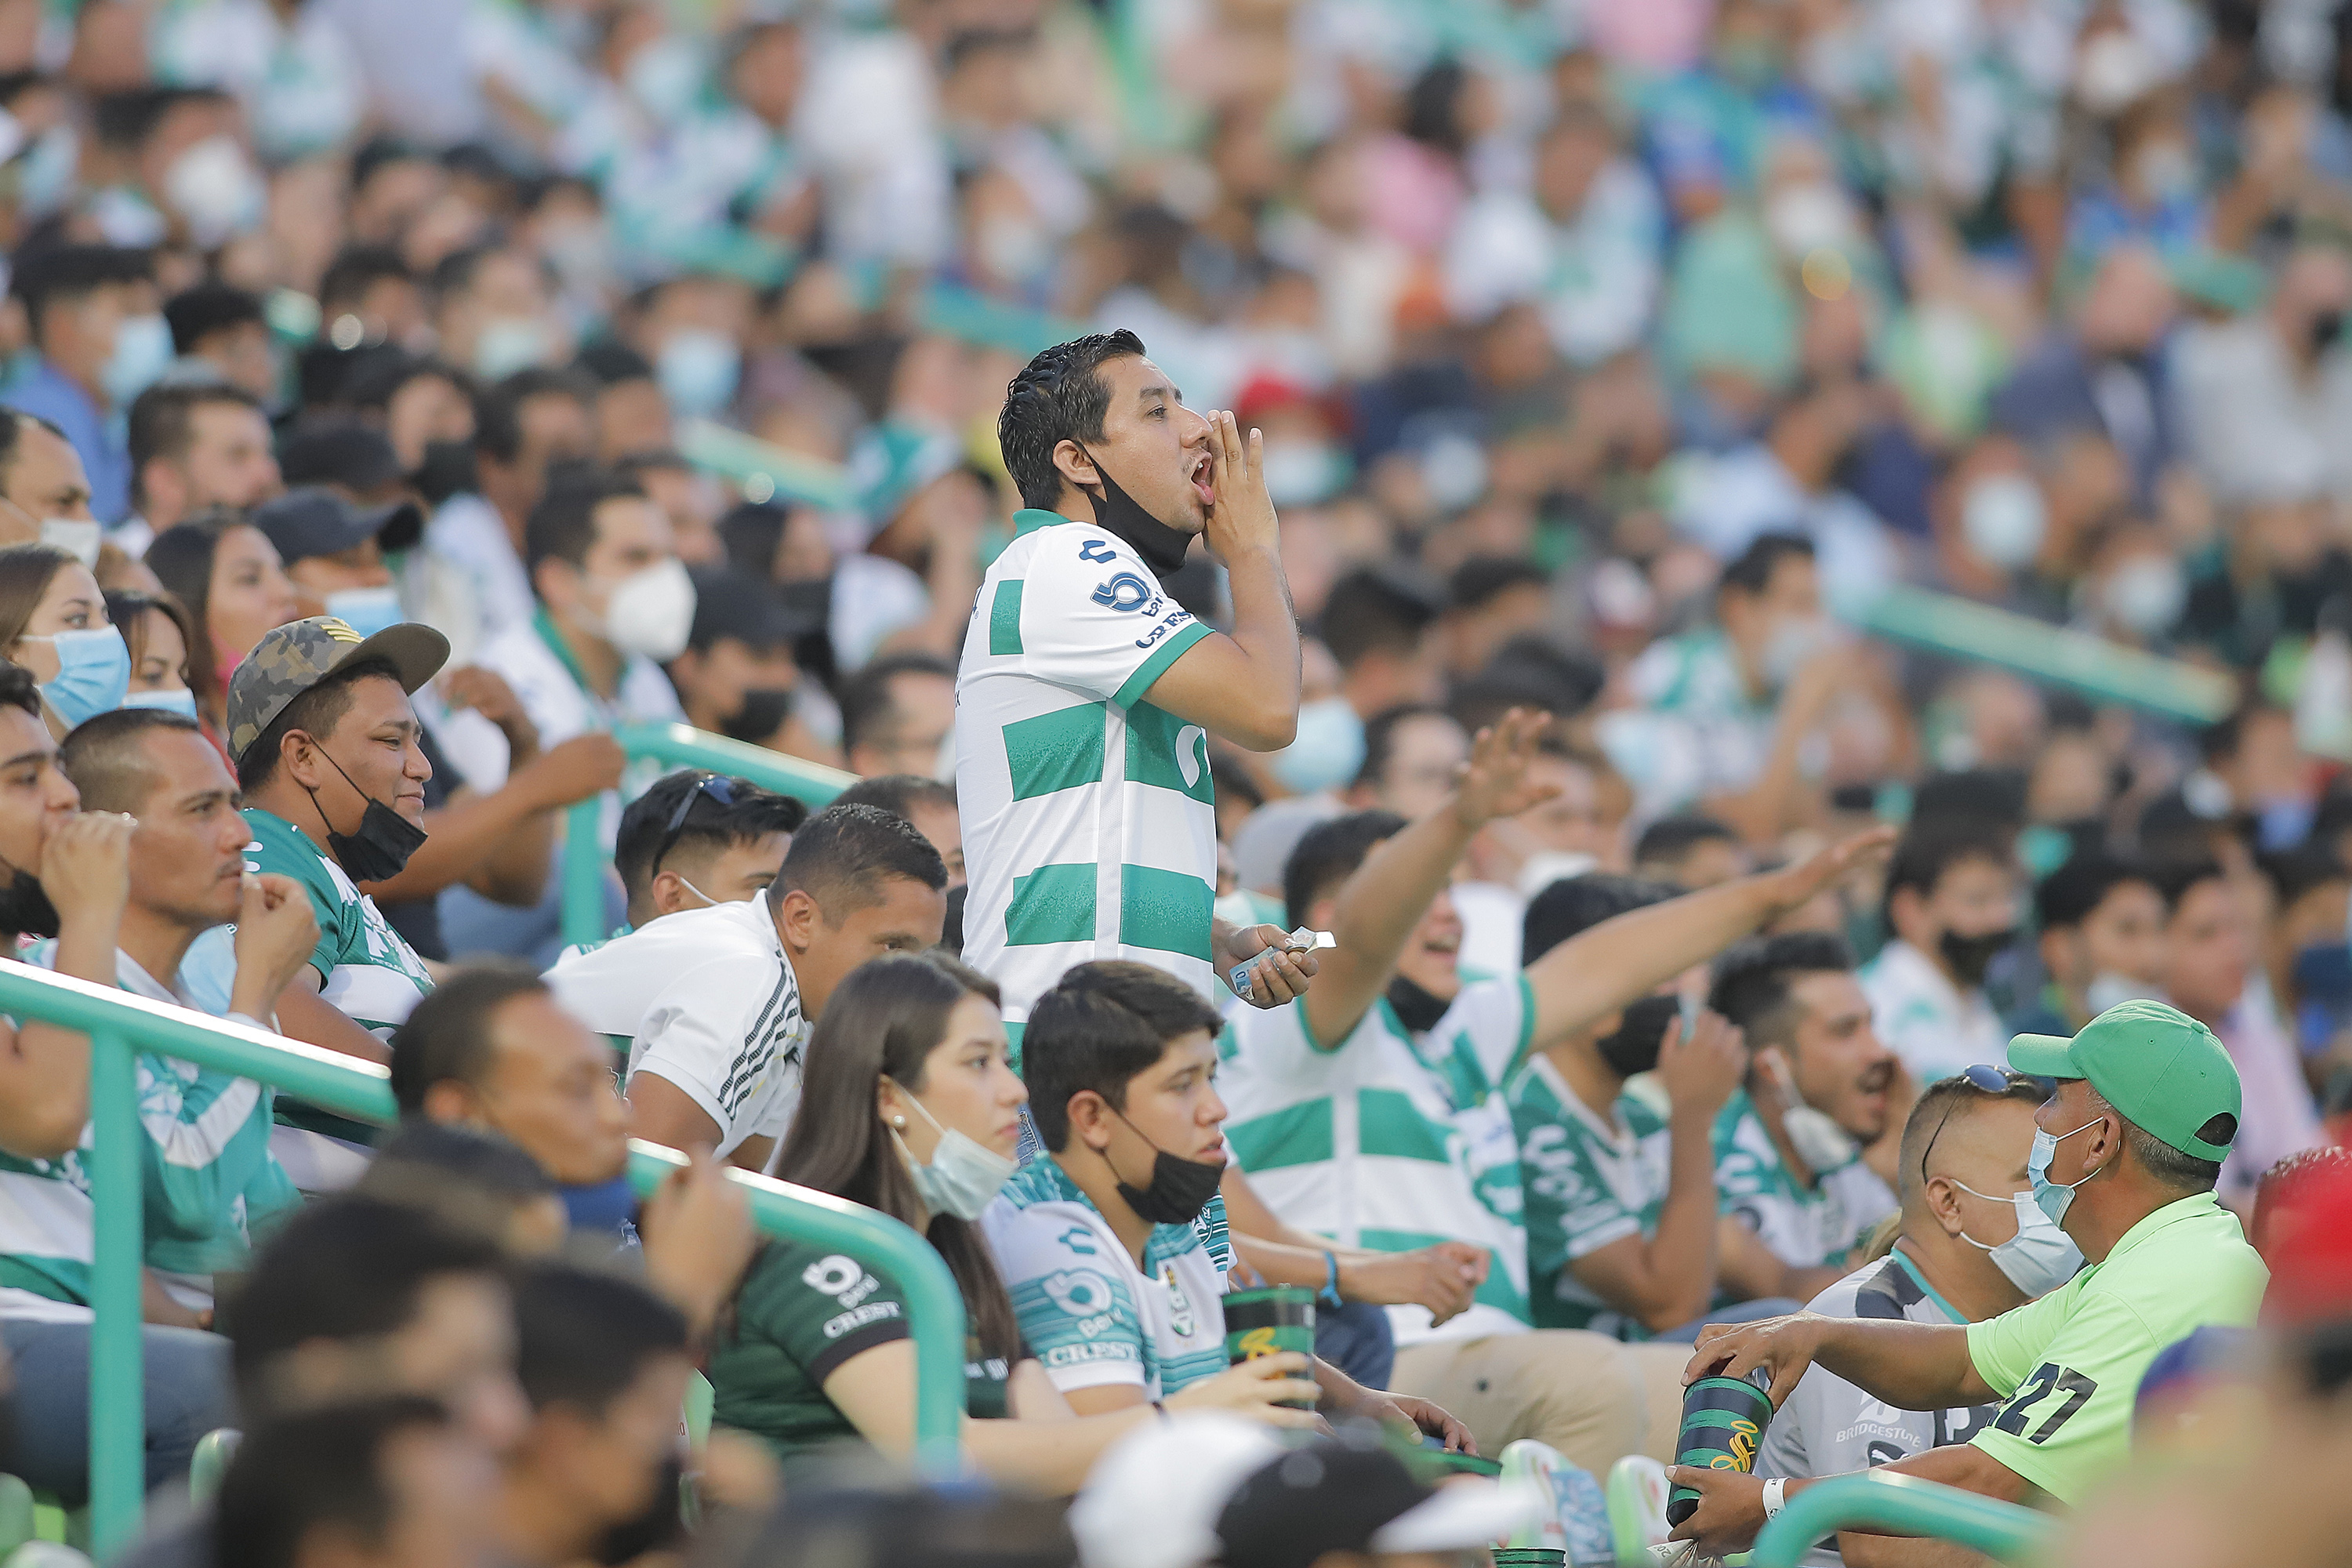 Fans of Santos shout during the 10th round match between Santos Laguna and Monterey as part of the Torneo Grita Mexico A21 Liga MX at Corona Stadium on September 26, 2021 in Torreon, Mexico.